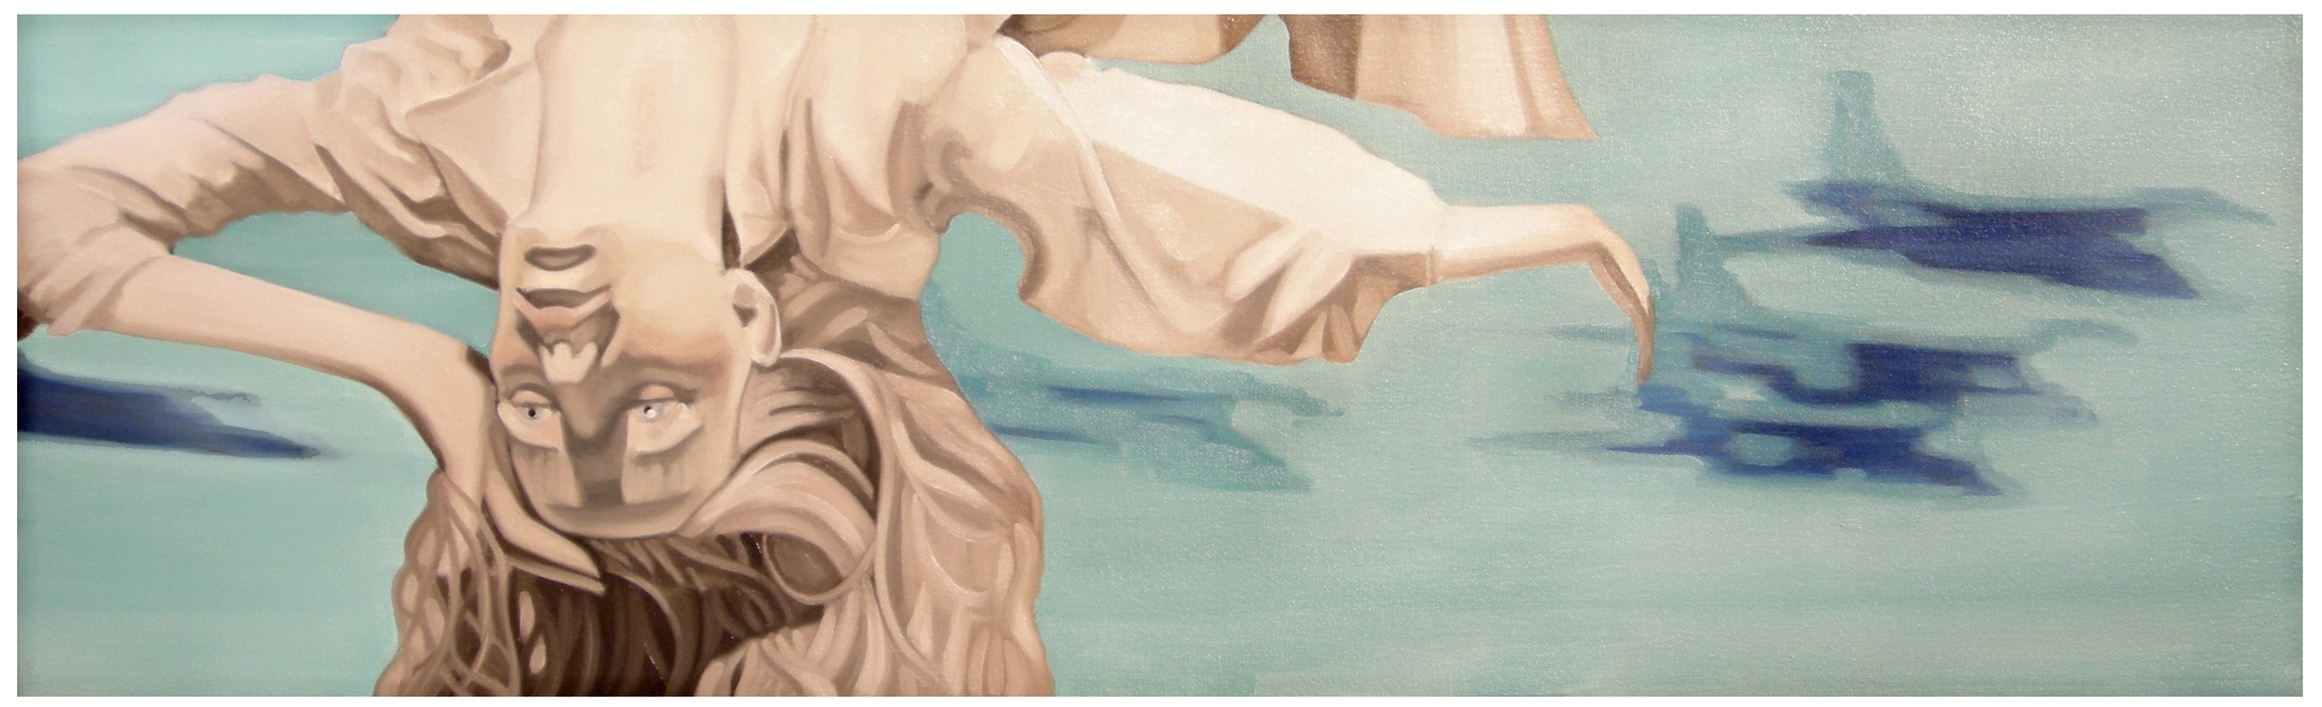 Jet Fighter  Oil on Canvas - 40 x 12in - 2007